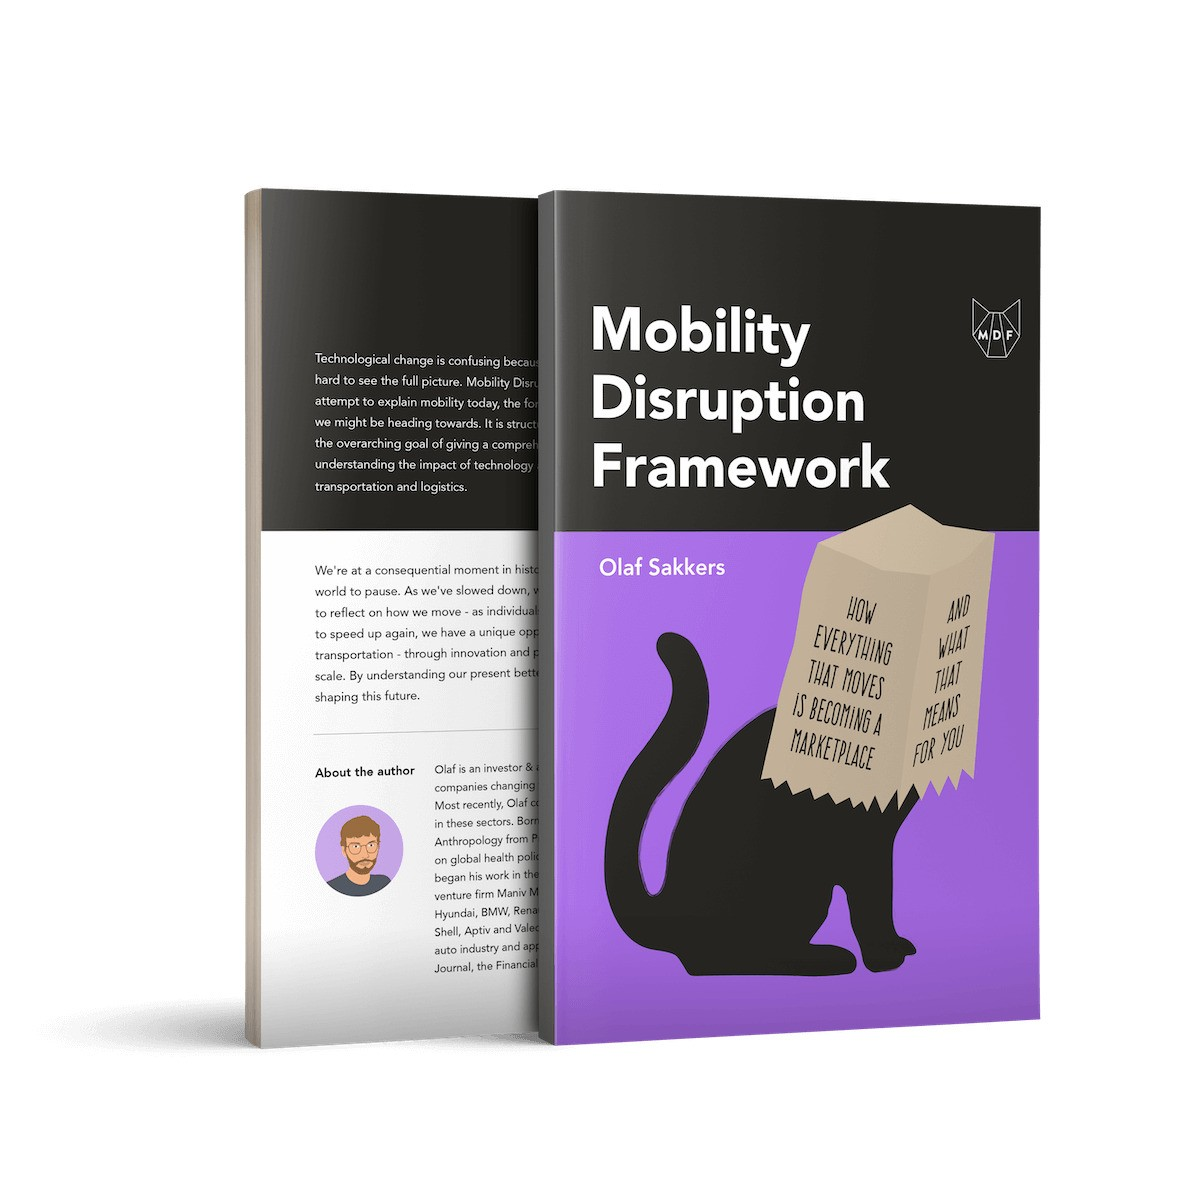 [Podcast] 120: The Mobility Disruption Framework with Olaf Sakkers